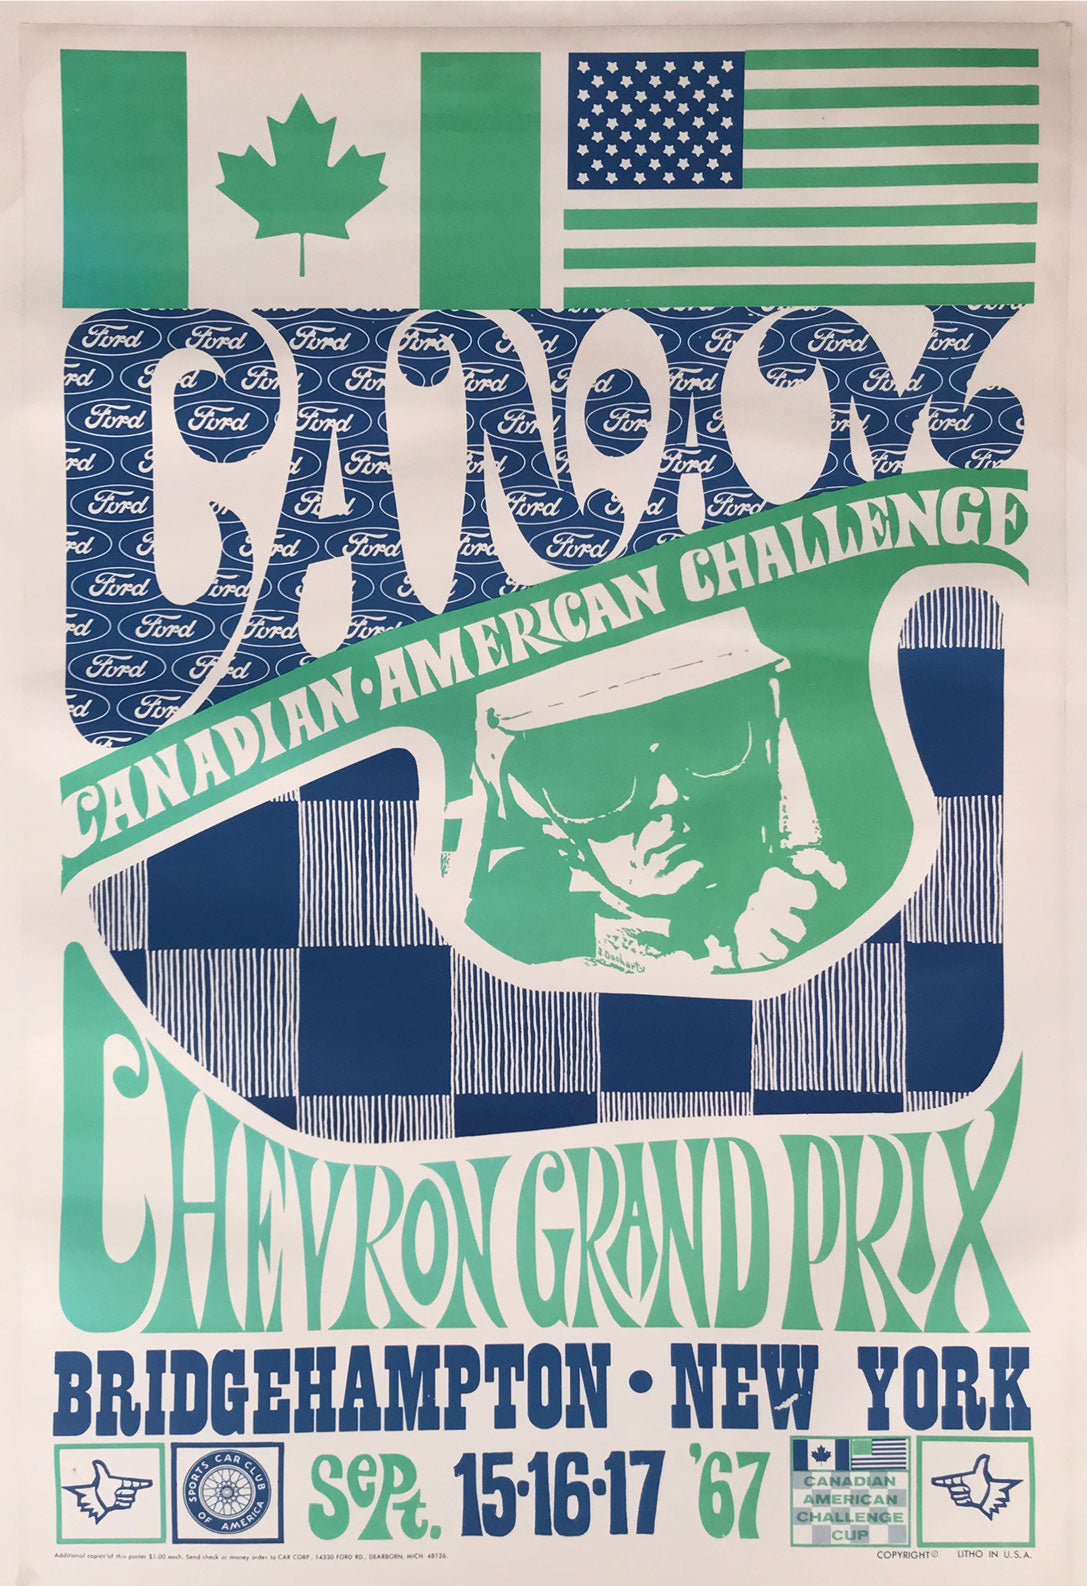 1967 Can-Am race at Bridgehampton psychedelic poster